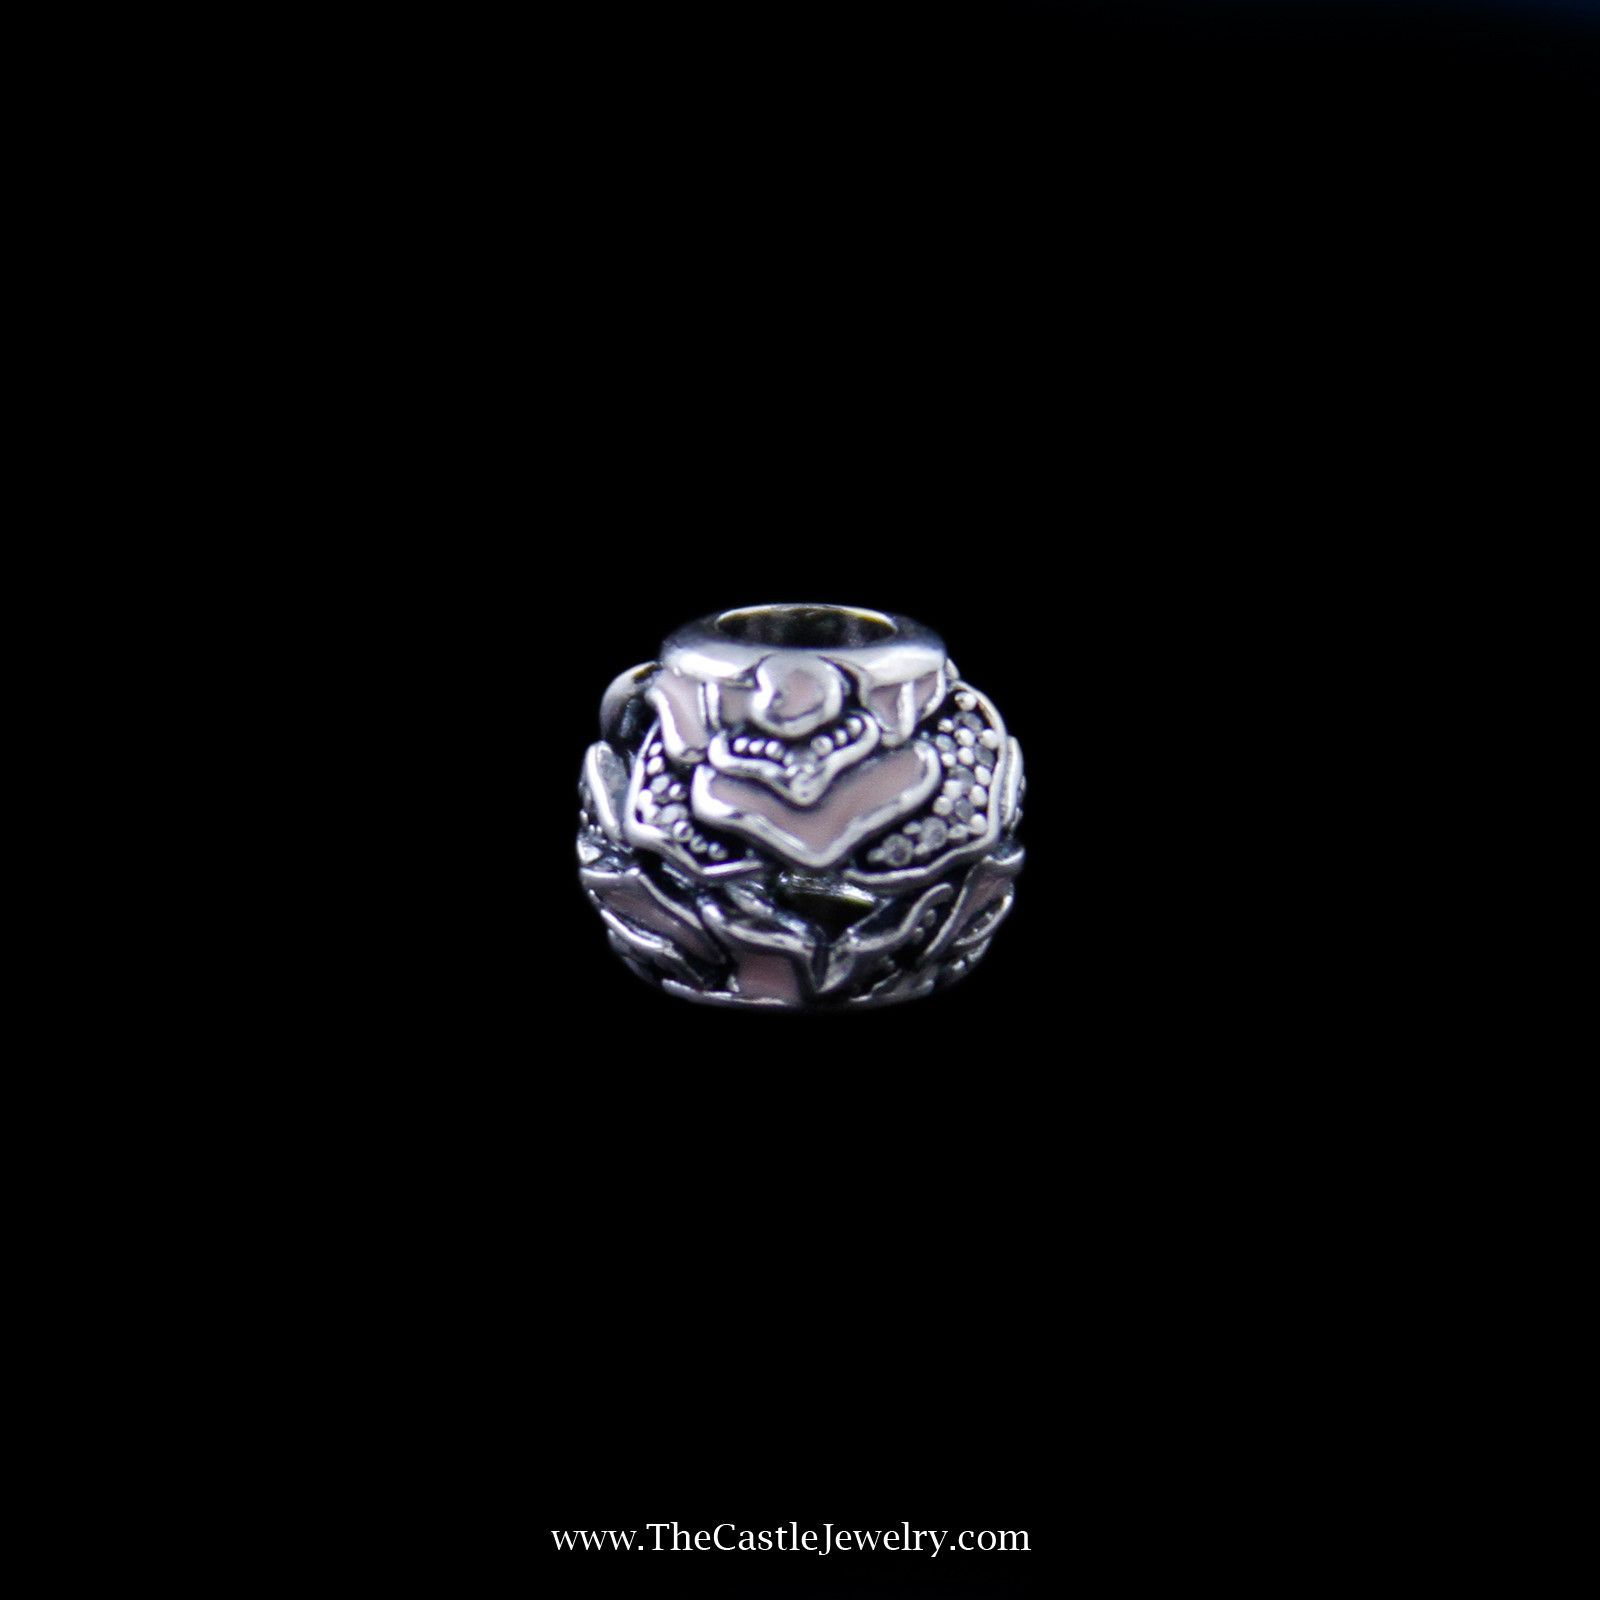 Pandora Rose Silver Charm in Sterling Silver